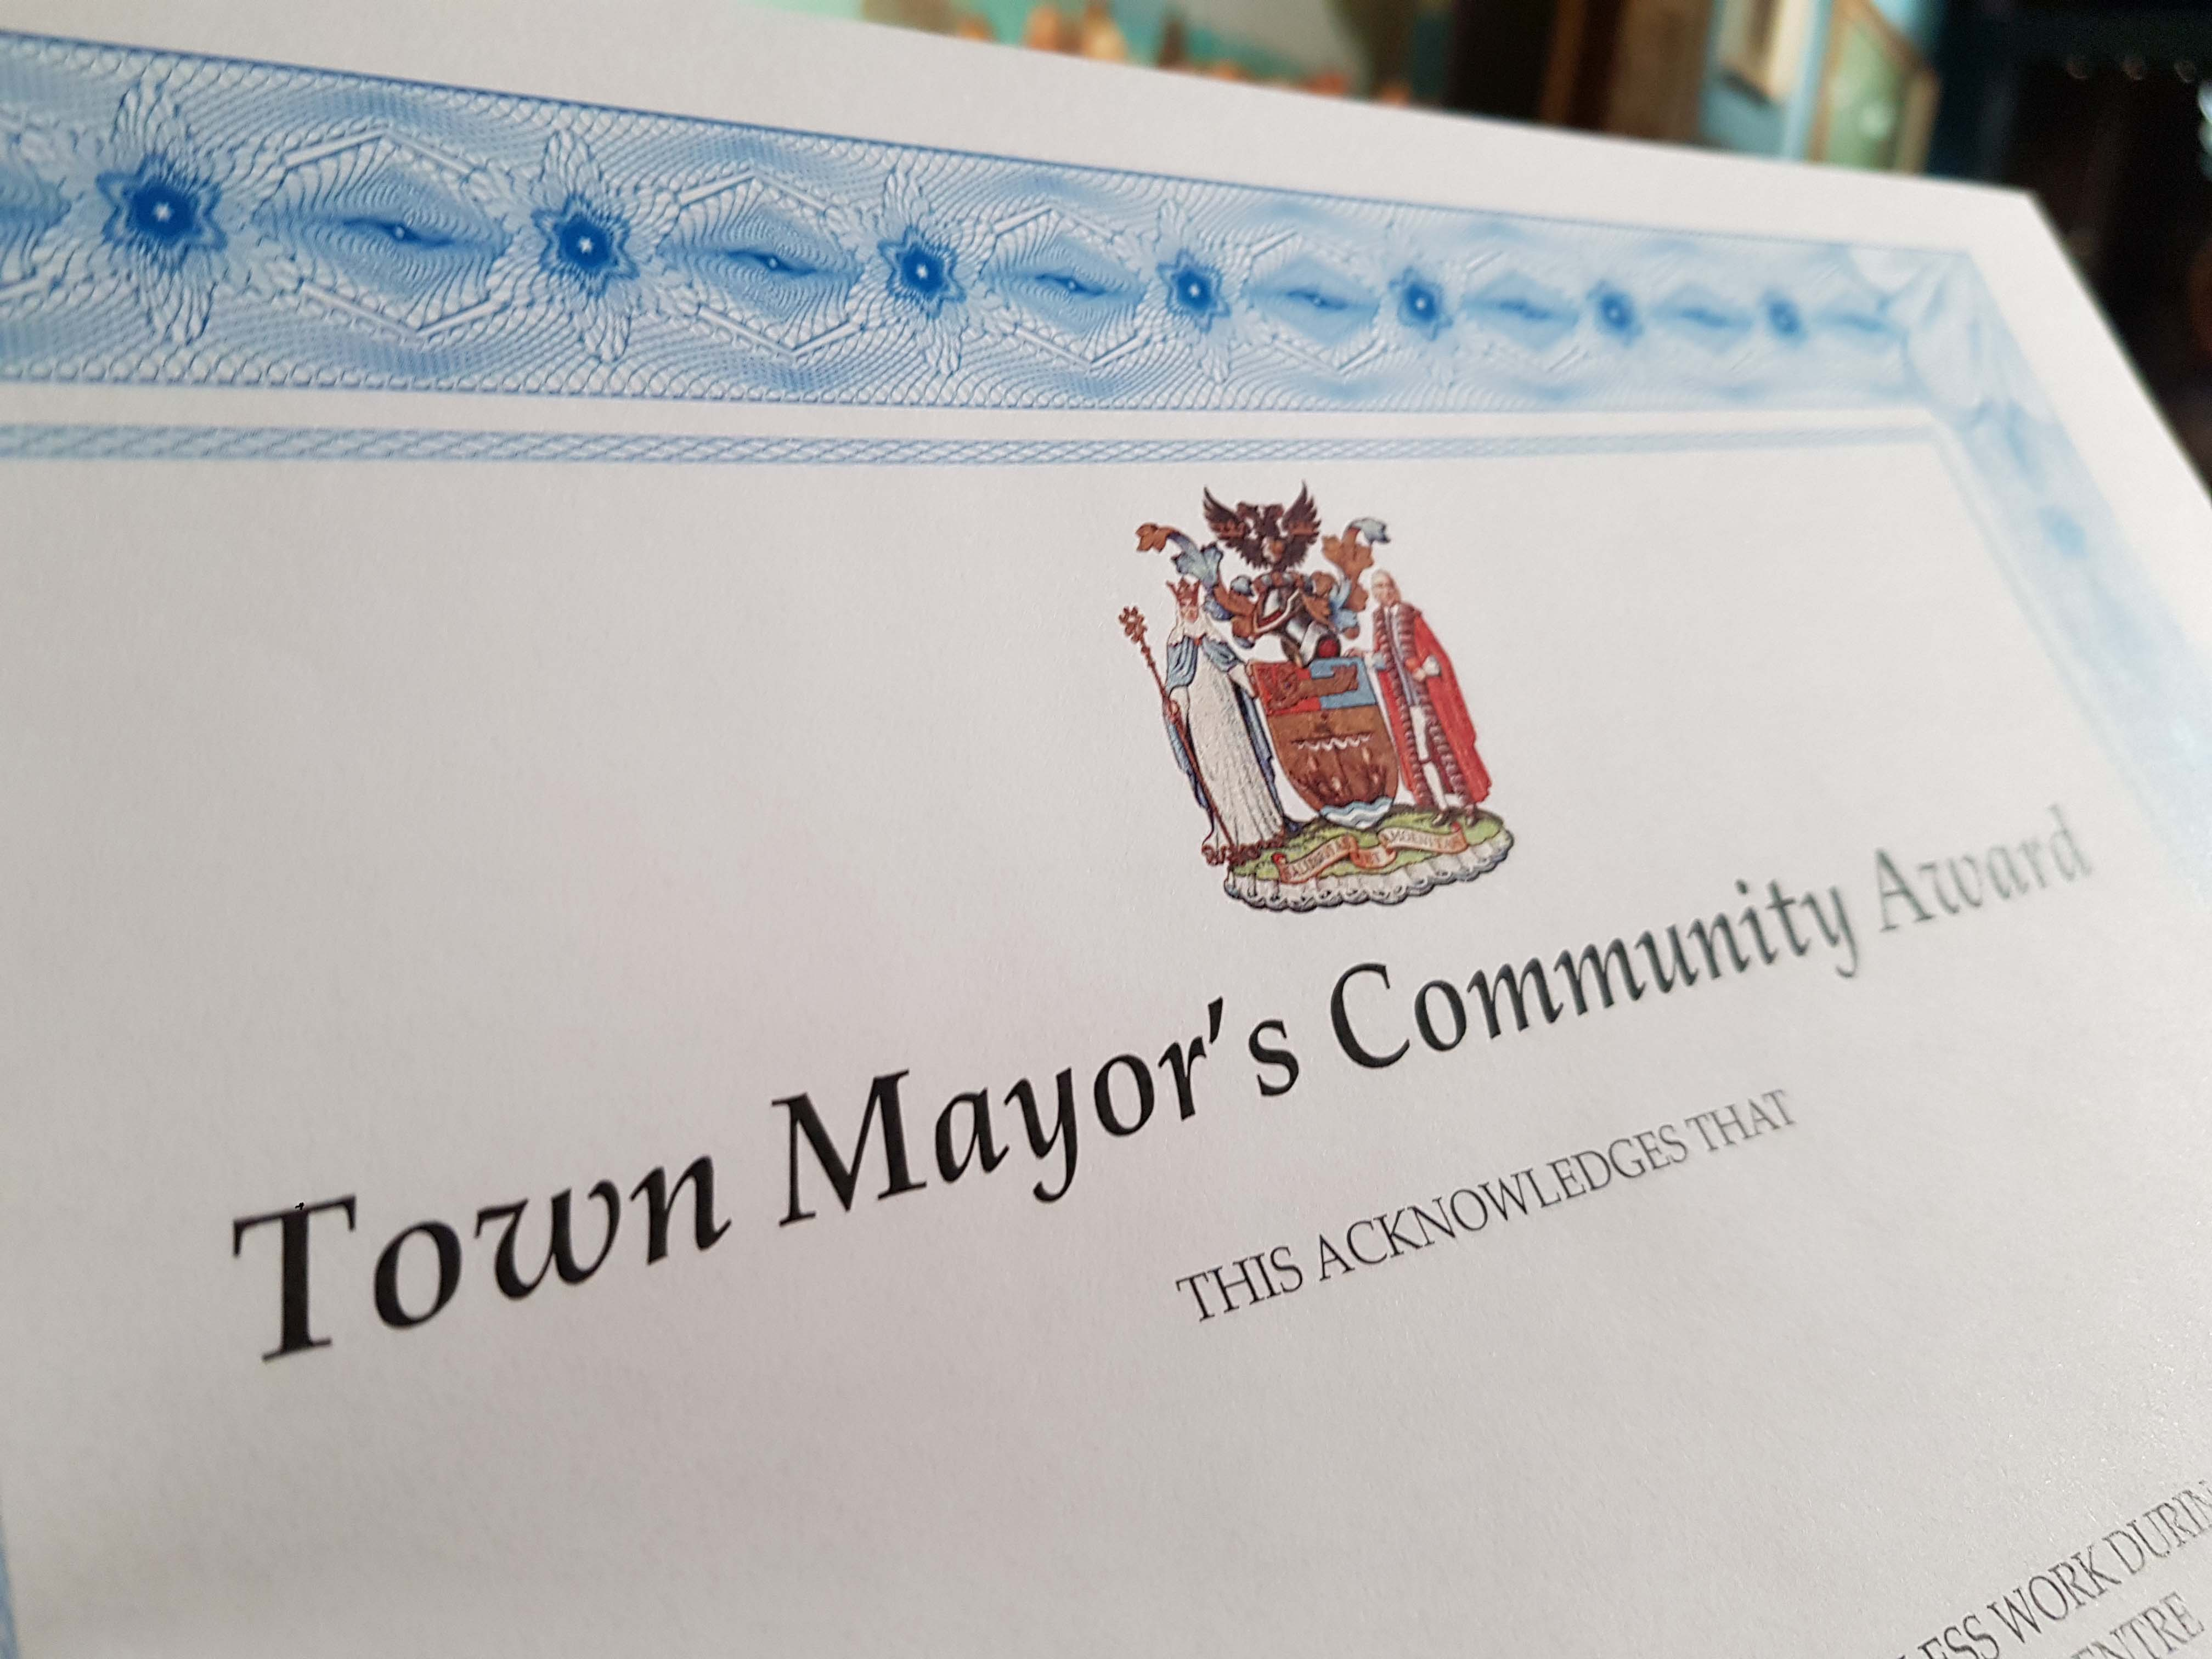 Town Mayors Community Awards